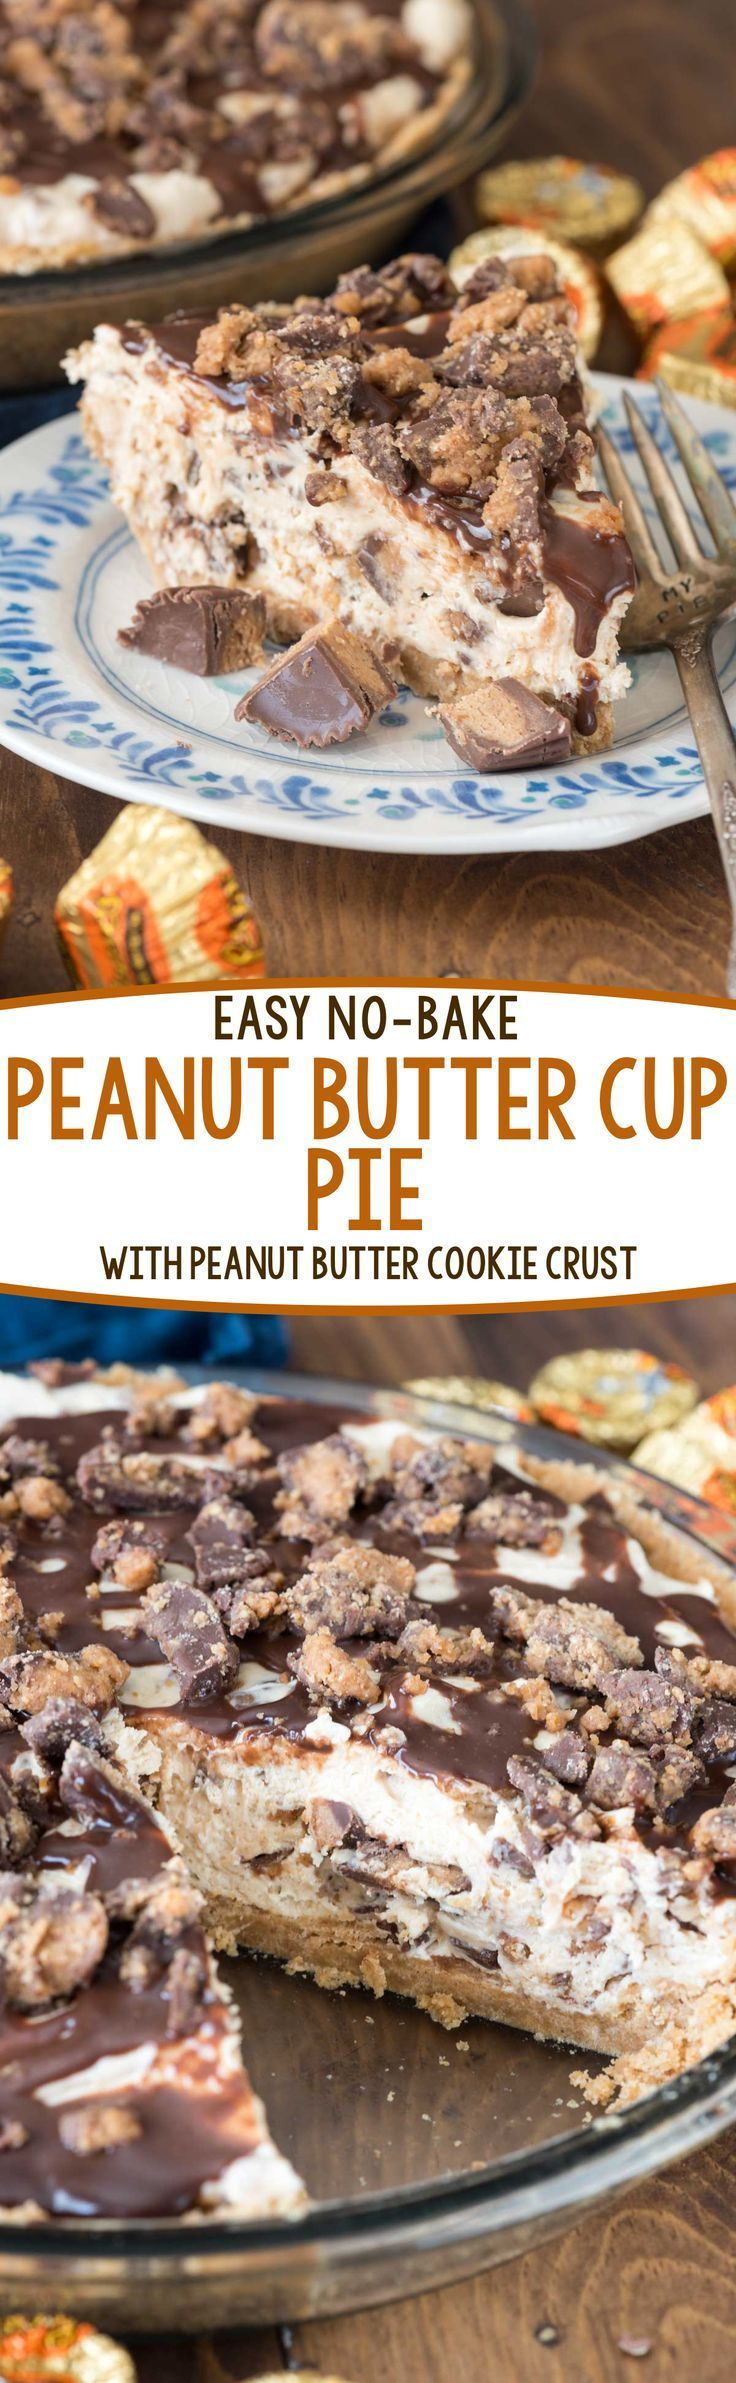 Easy No Bake Peanut Butter Cup Pie